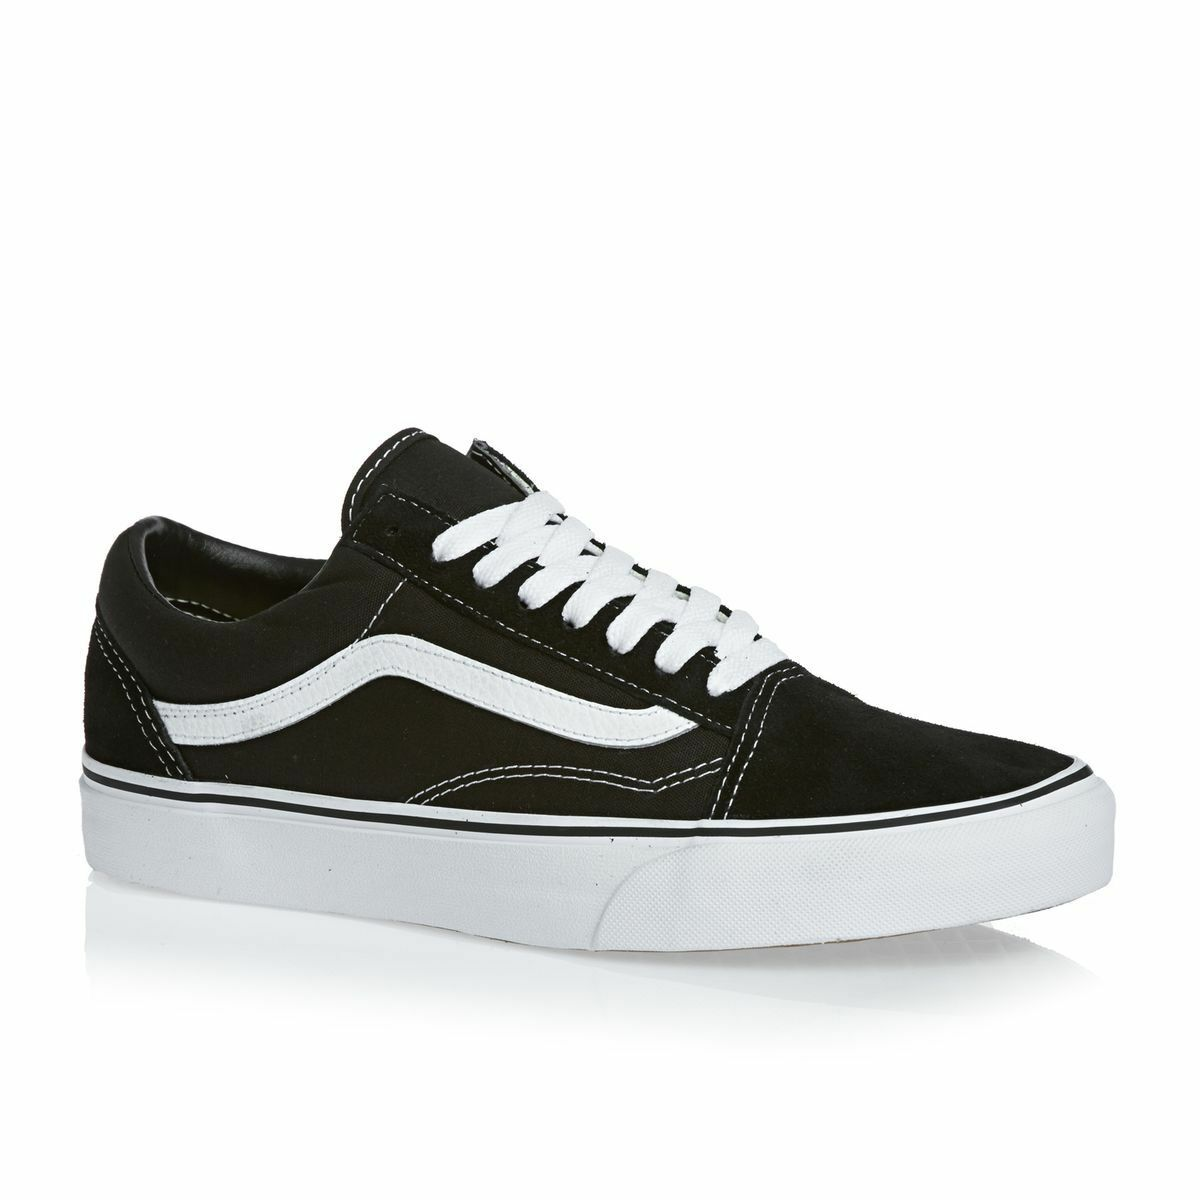 New Women Vans Old Skool Black Skateboarding Shoes Classic Canvas Suede size 8